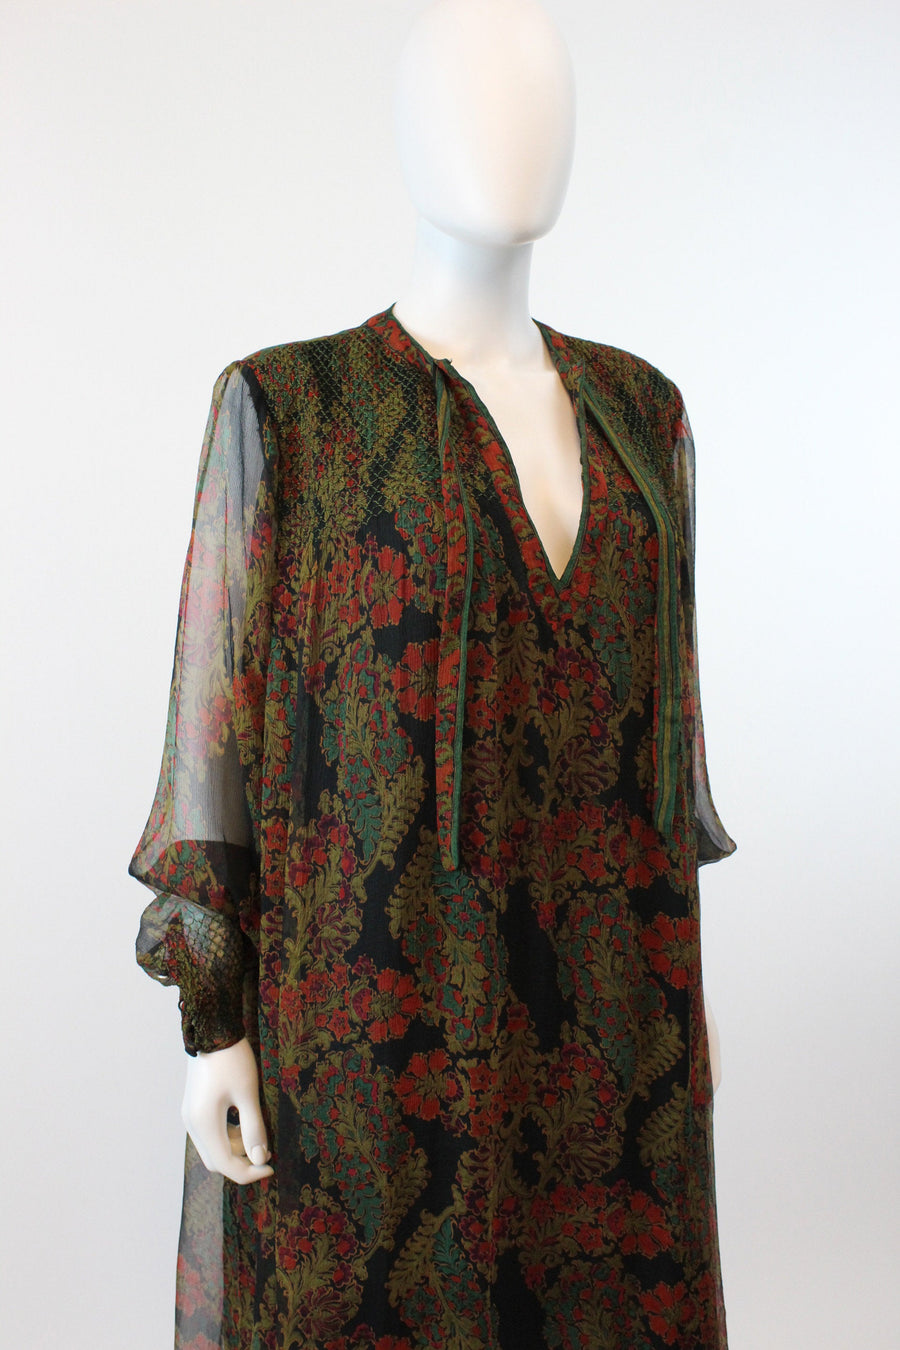 1970s Aananda Indian silk dress caftan |  vintage silk maxi dress | all sizes